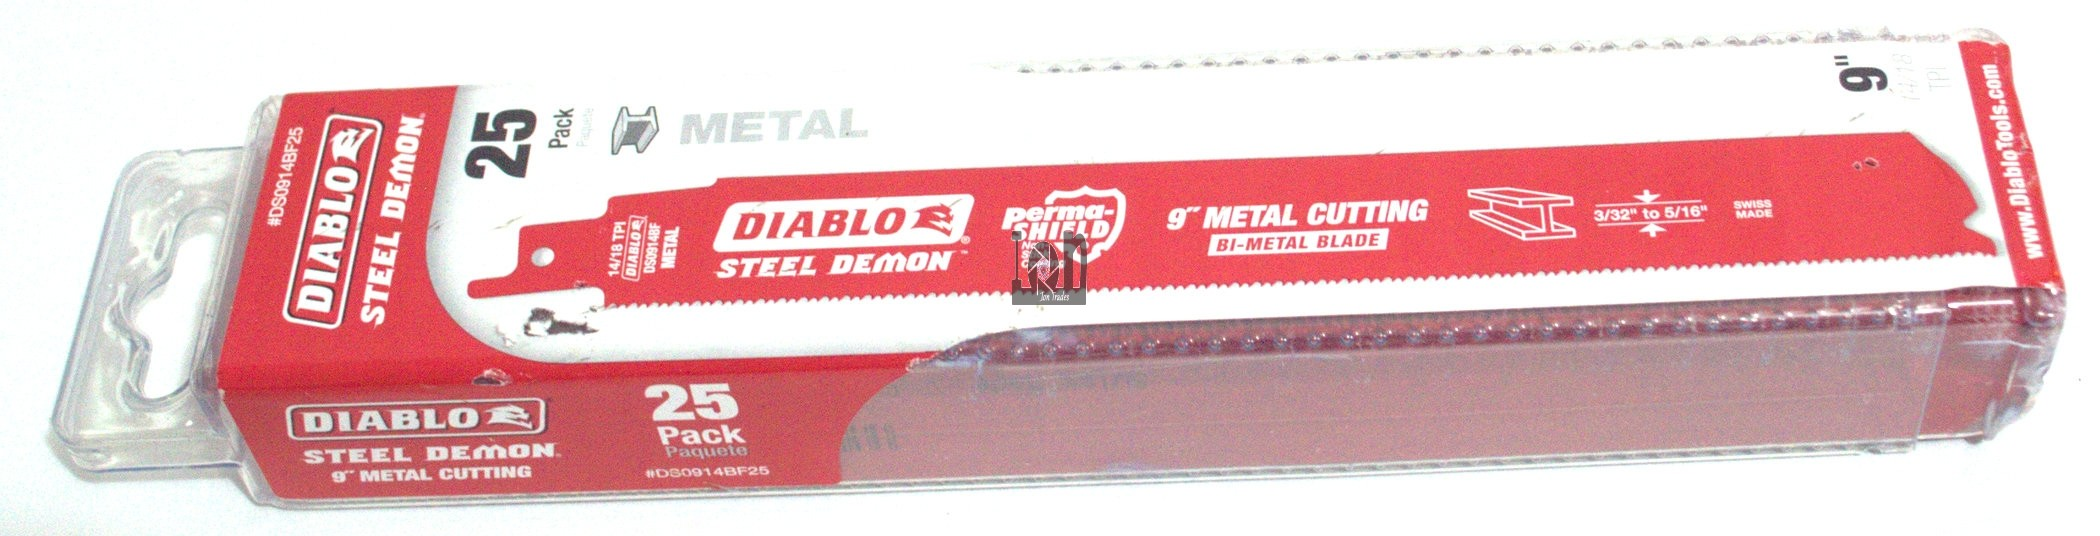 "Diablo DS0914BF25 25pk Reciprocating Saw Blade 9"" Metal Cutting 14/18TPI"